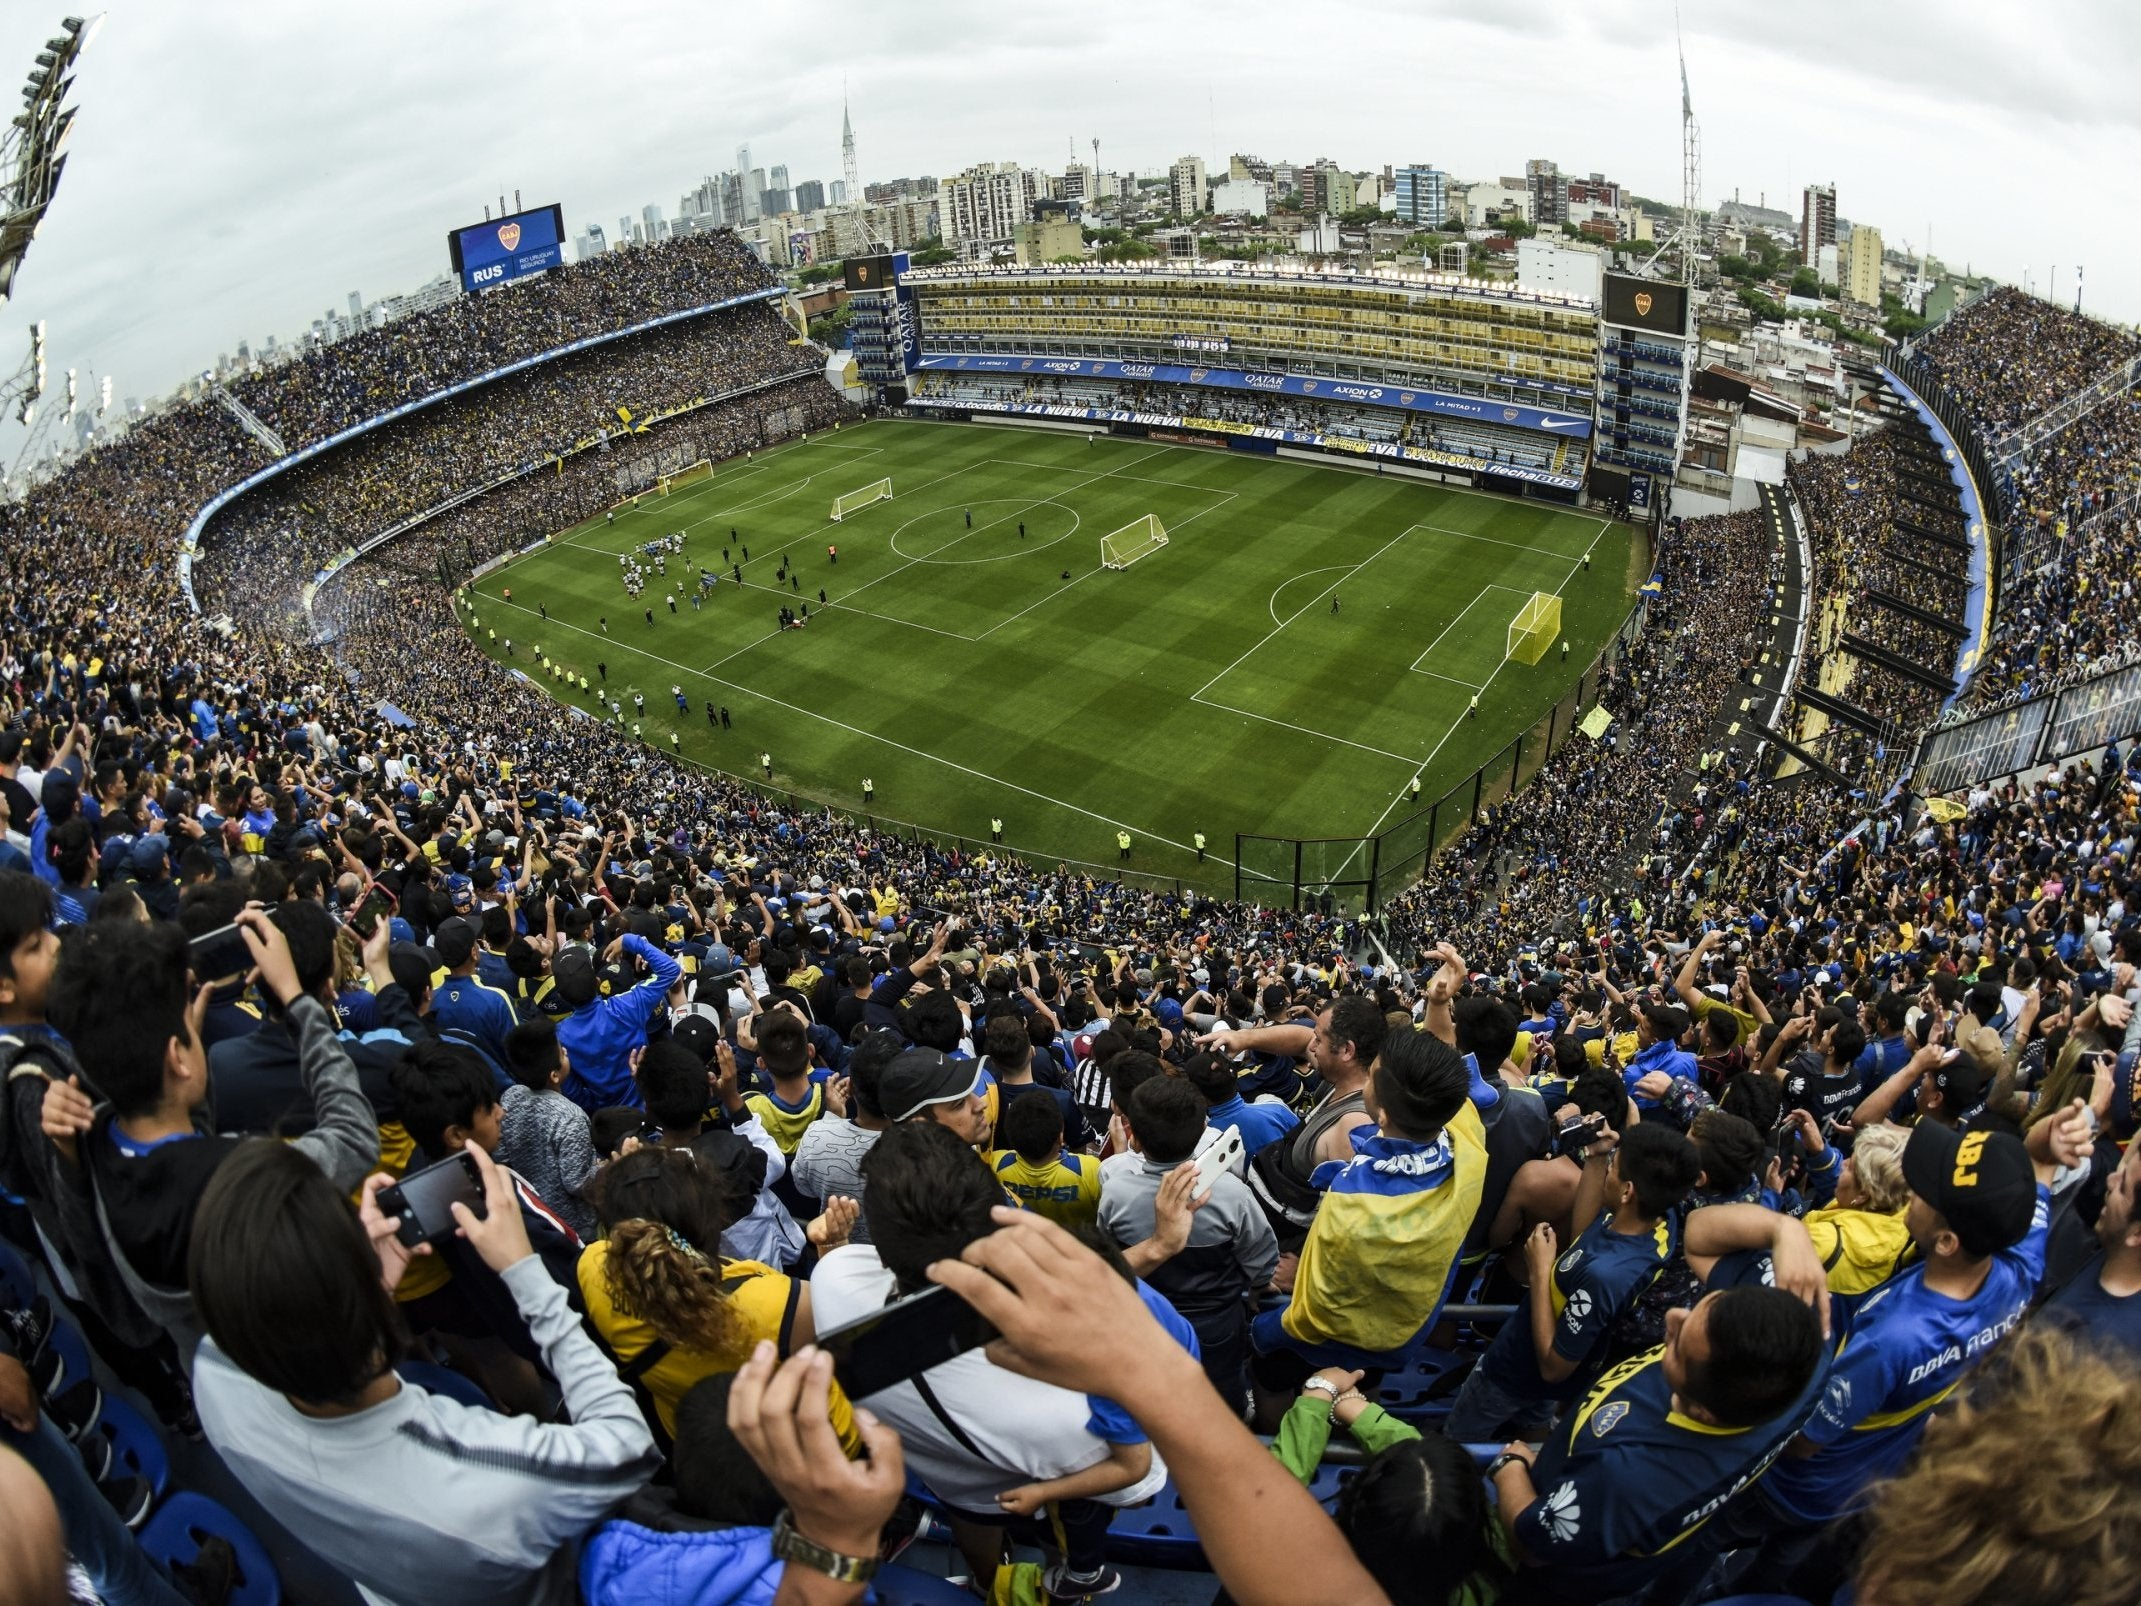 Copa Libertadores: River Plate, Boca Juniors And The Final